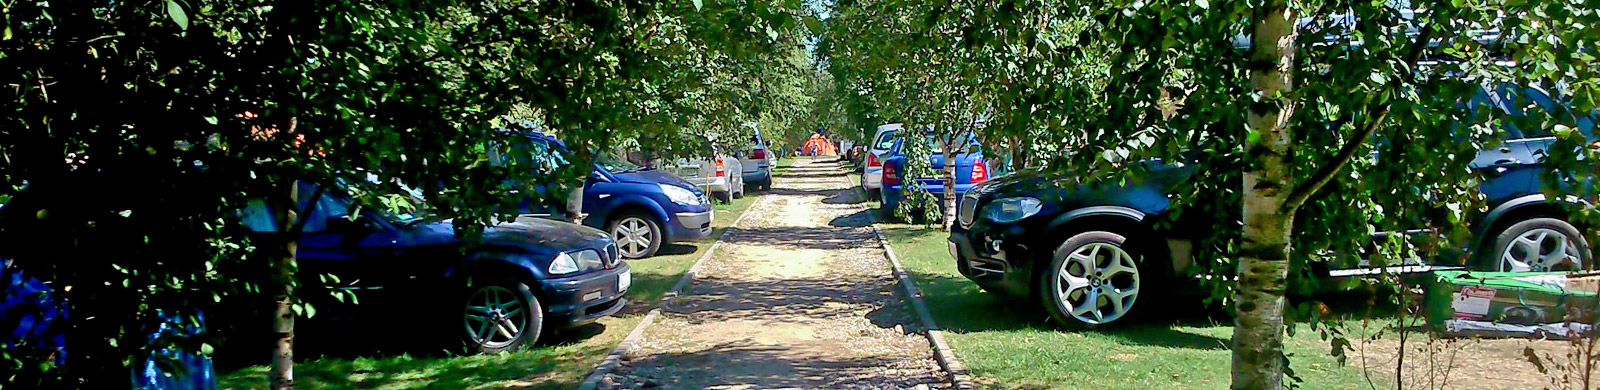 Parking na ternenie campingu